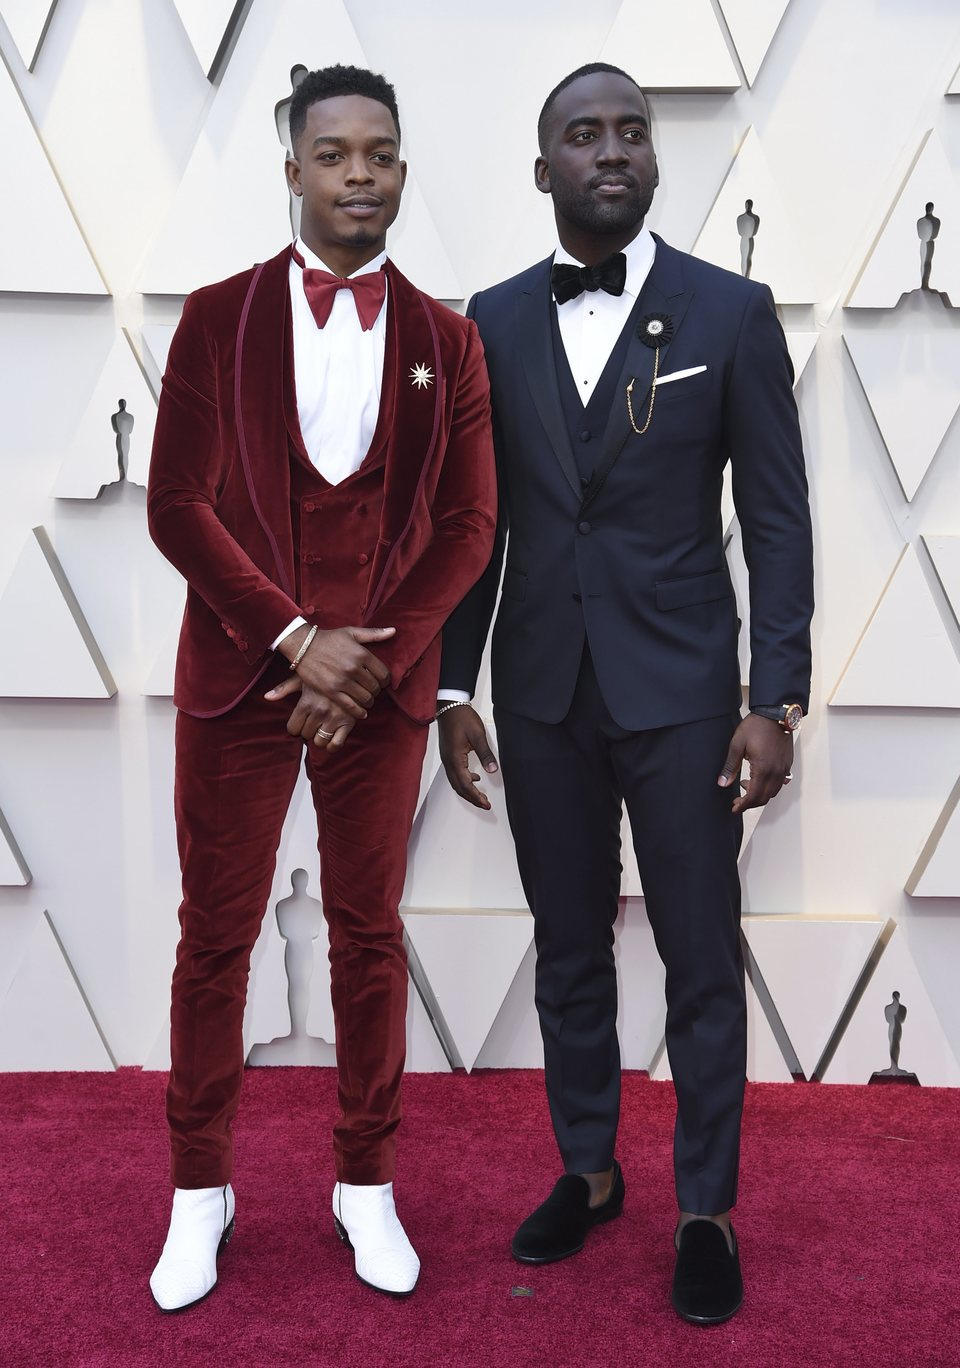 Stephan James and Shamier Anderson at the Oscars 2019 red carpet